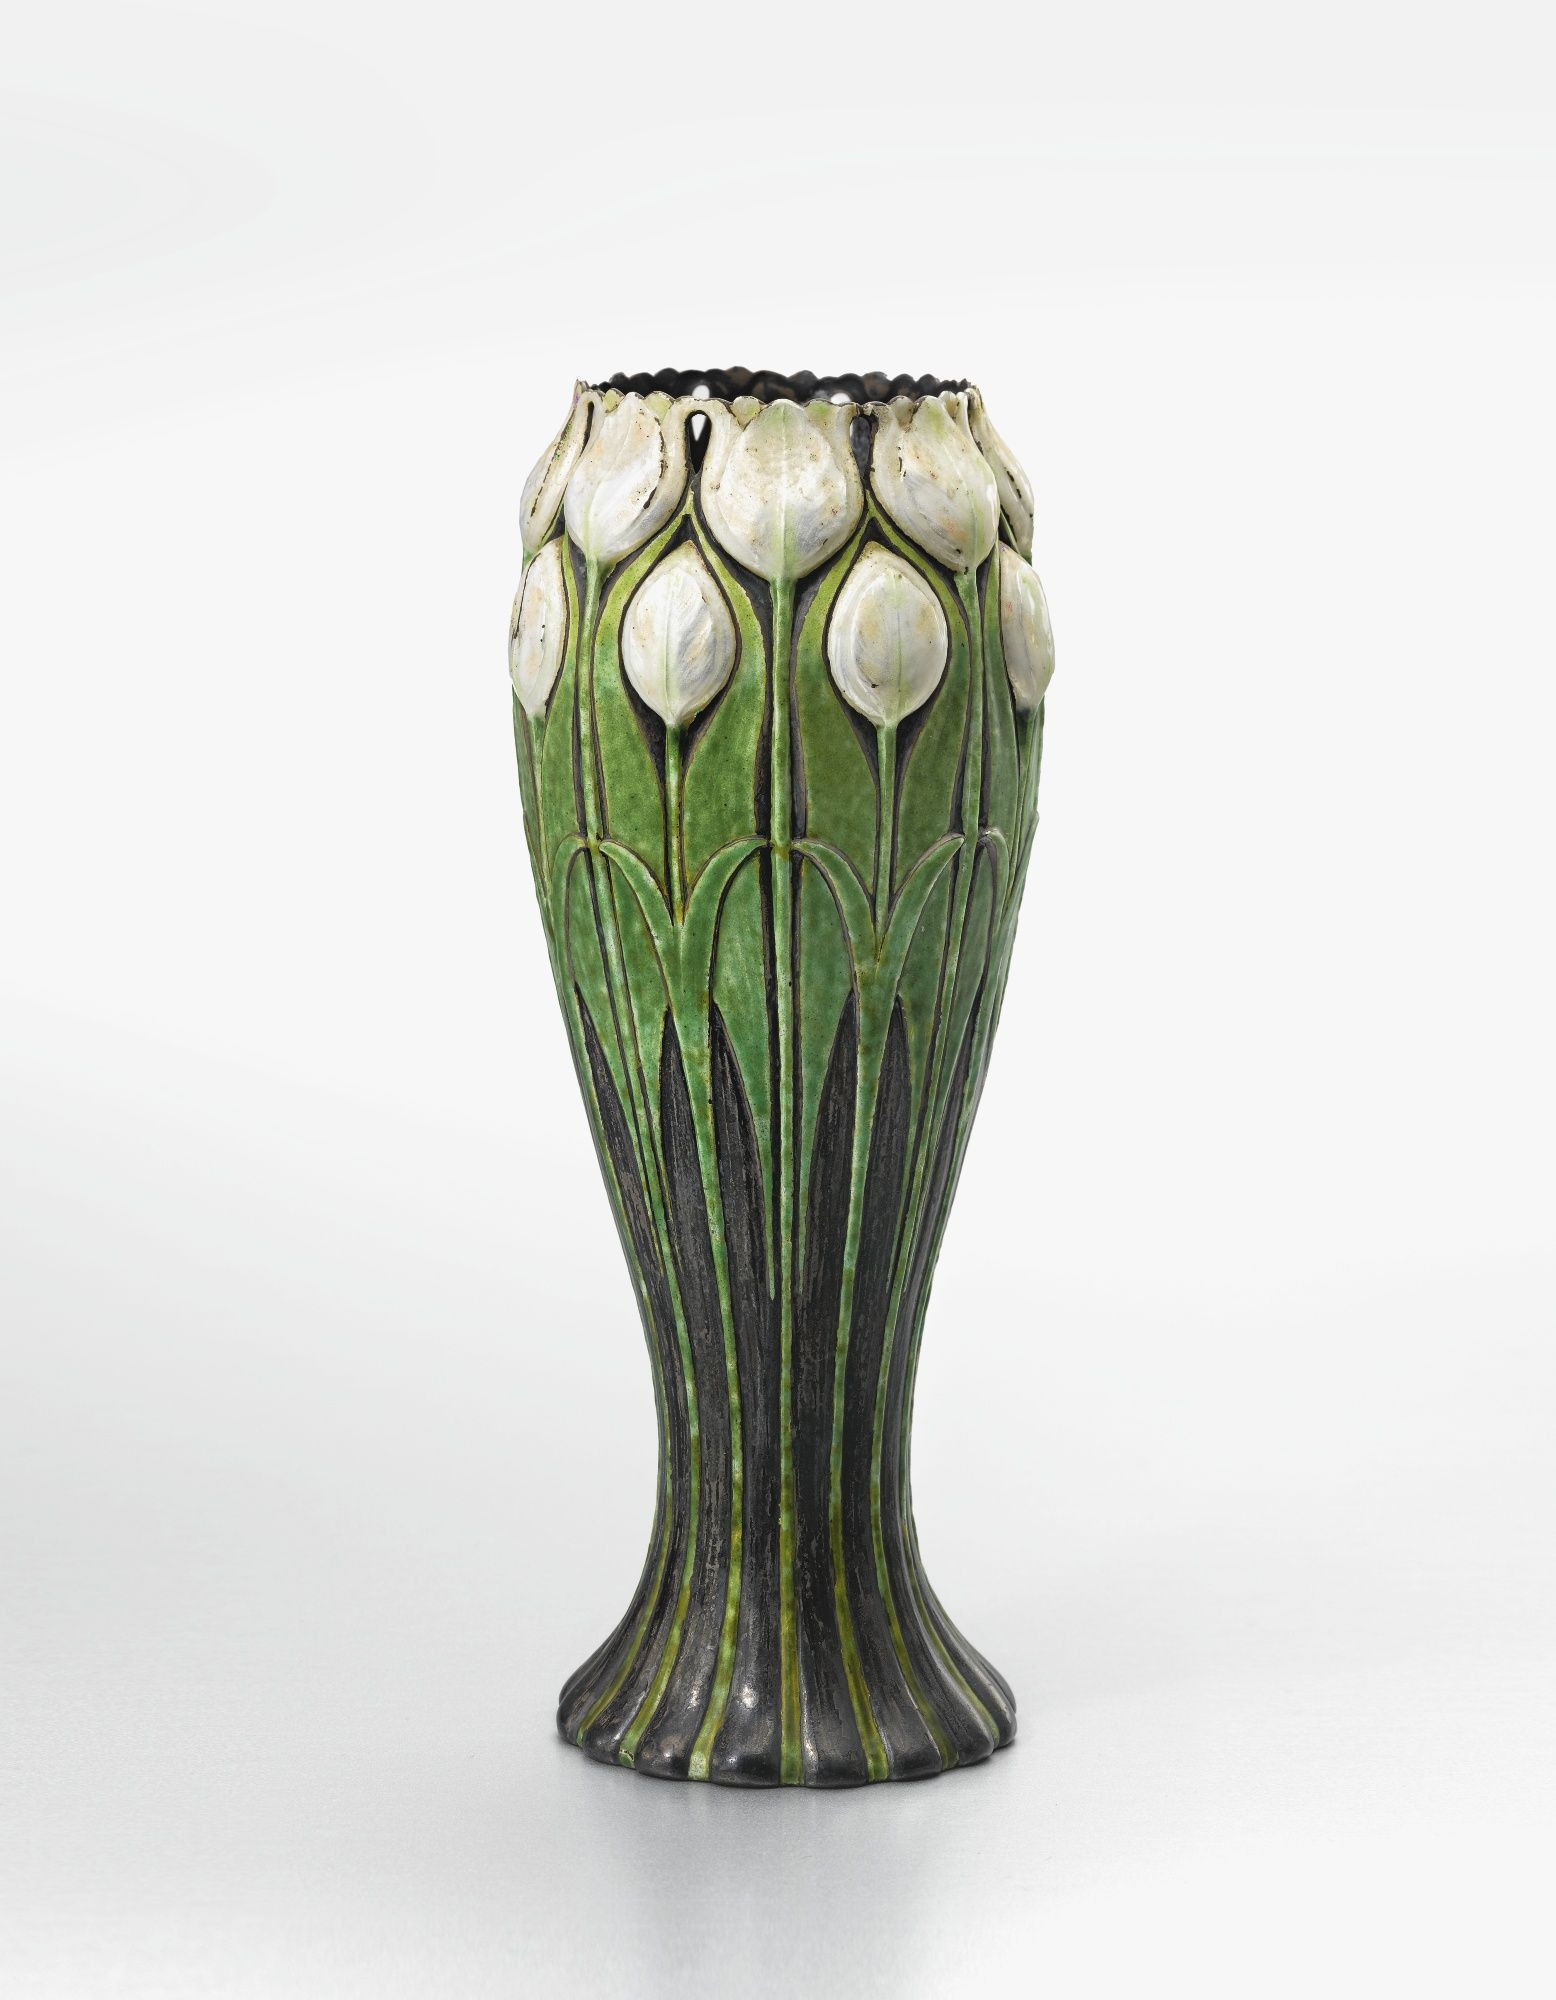 tiffany vases for sale of crystal vase prices images tiffany co tulip vase impressed throughout crystal vase prices images tiffany co tulip vase impressed tiffany co makers 4105